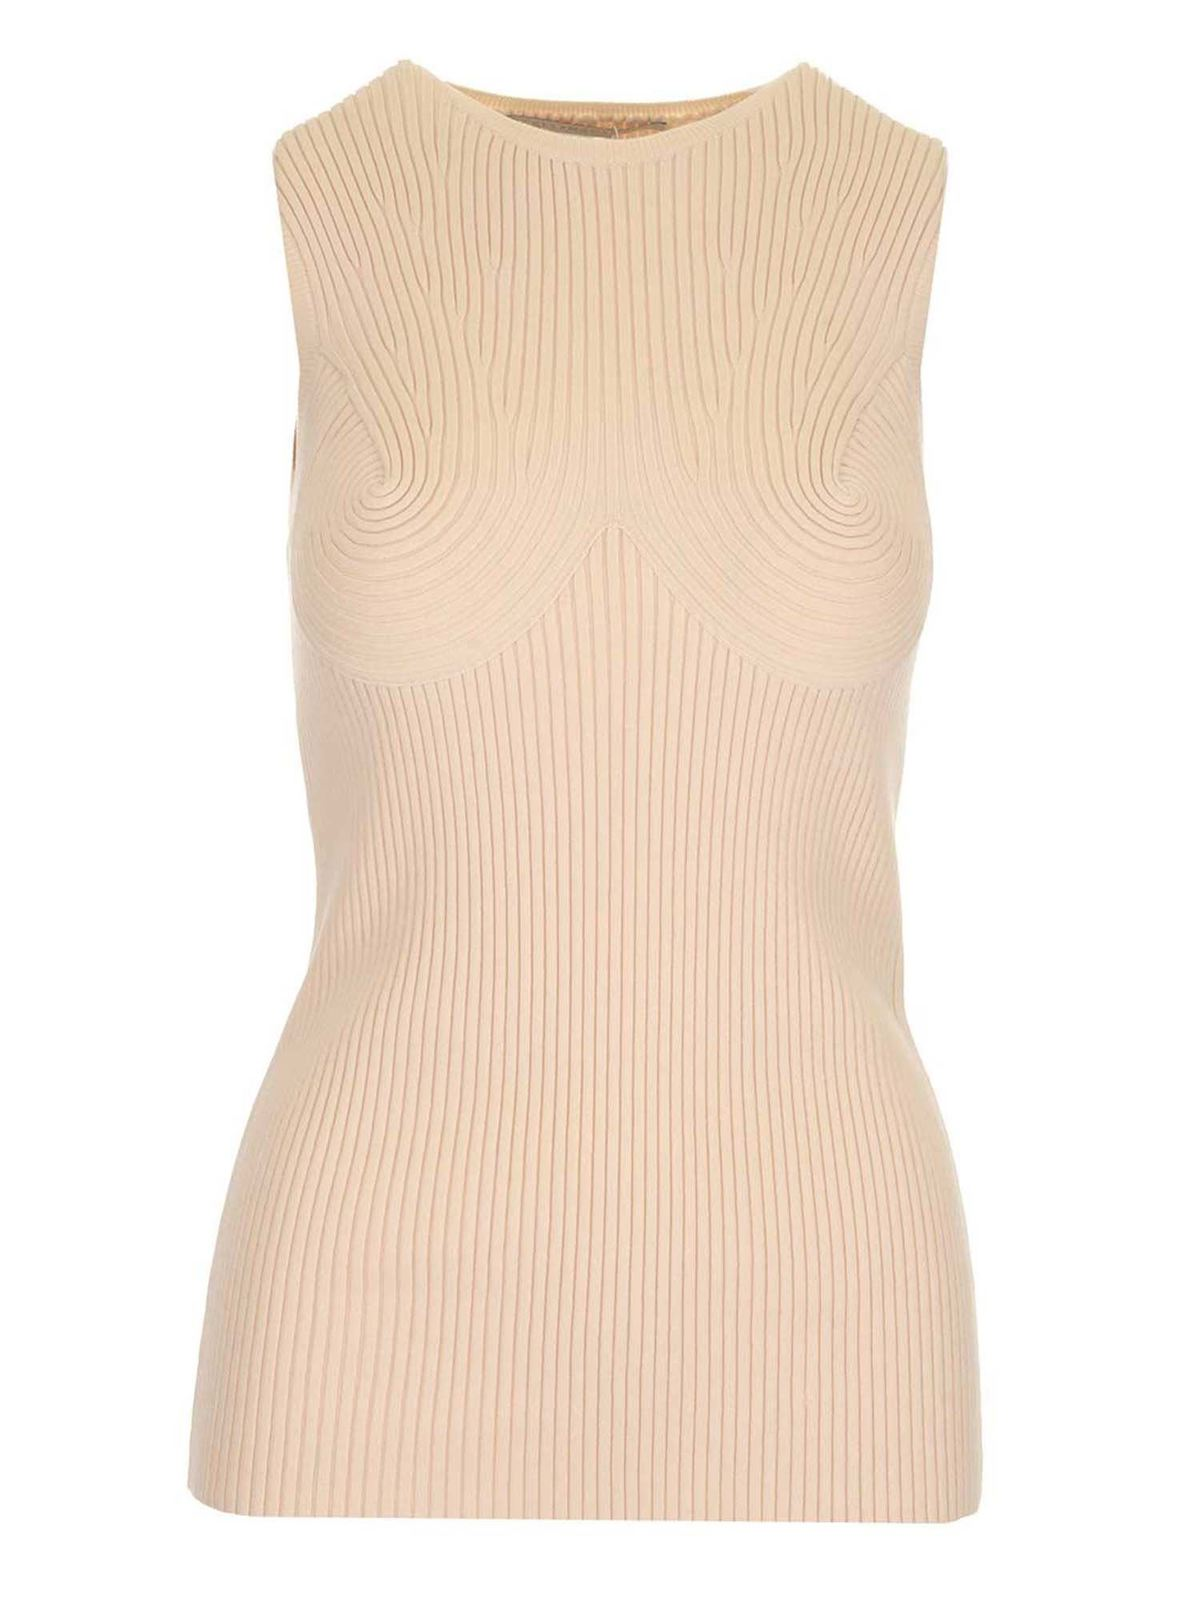 Stella Mccartney Cottons RIBBED TOP